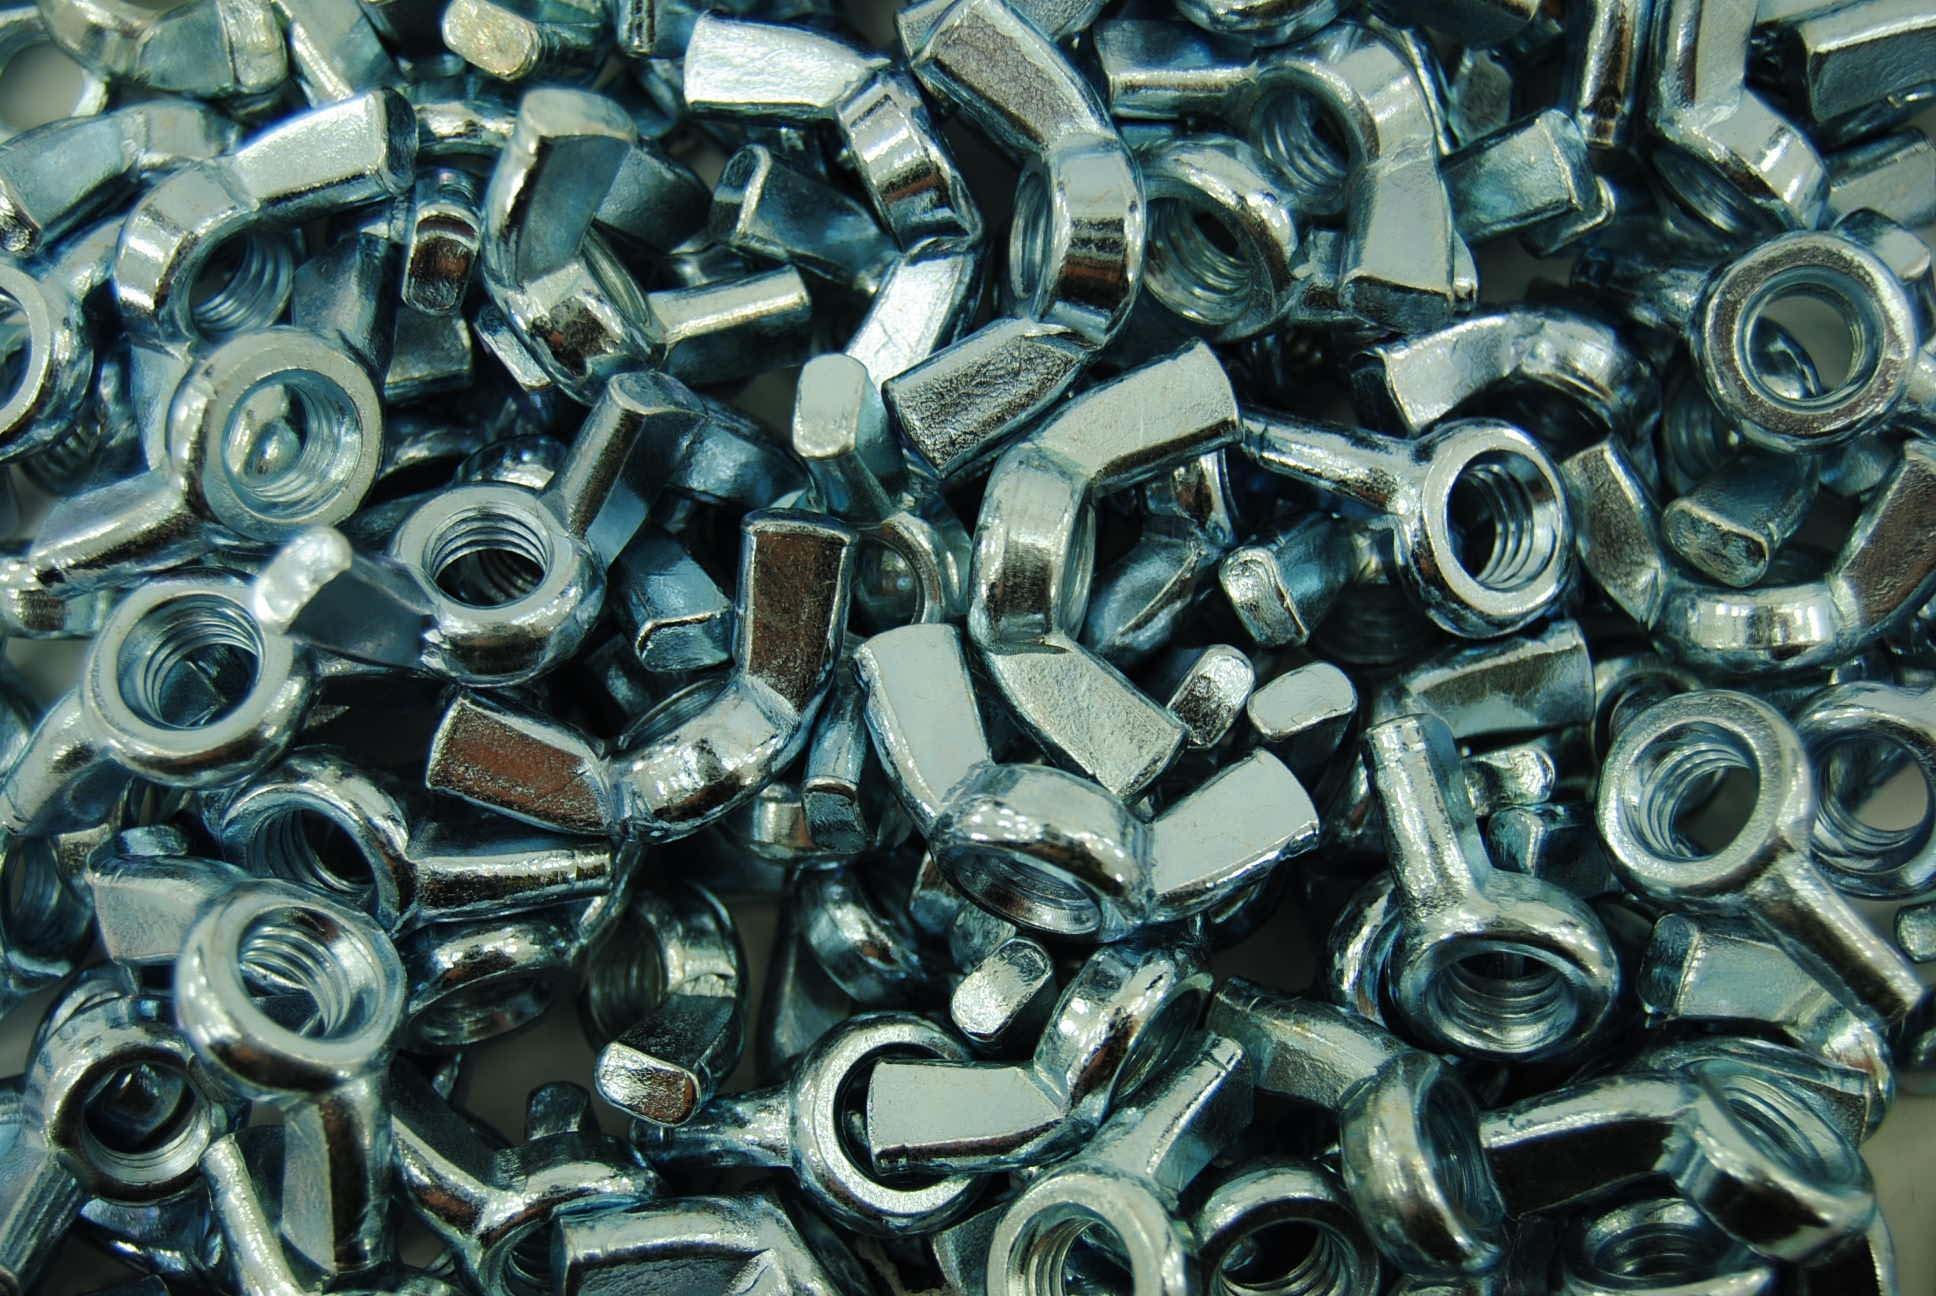 (250) Forged Wing Nuts 3/8-16 Zinc Plated - Coarse